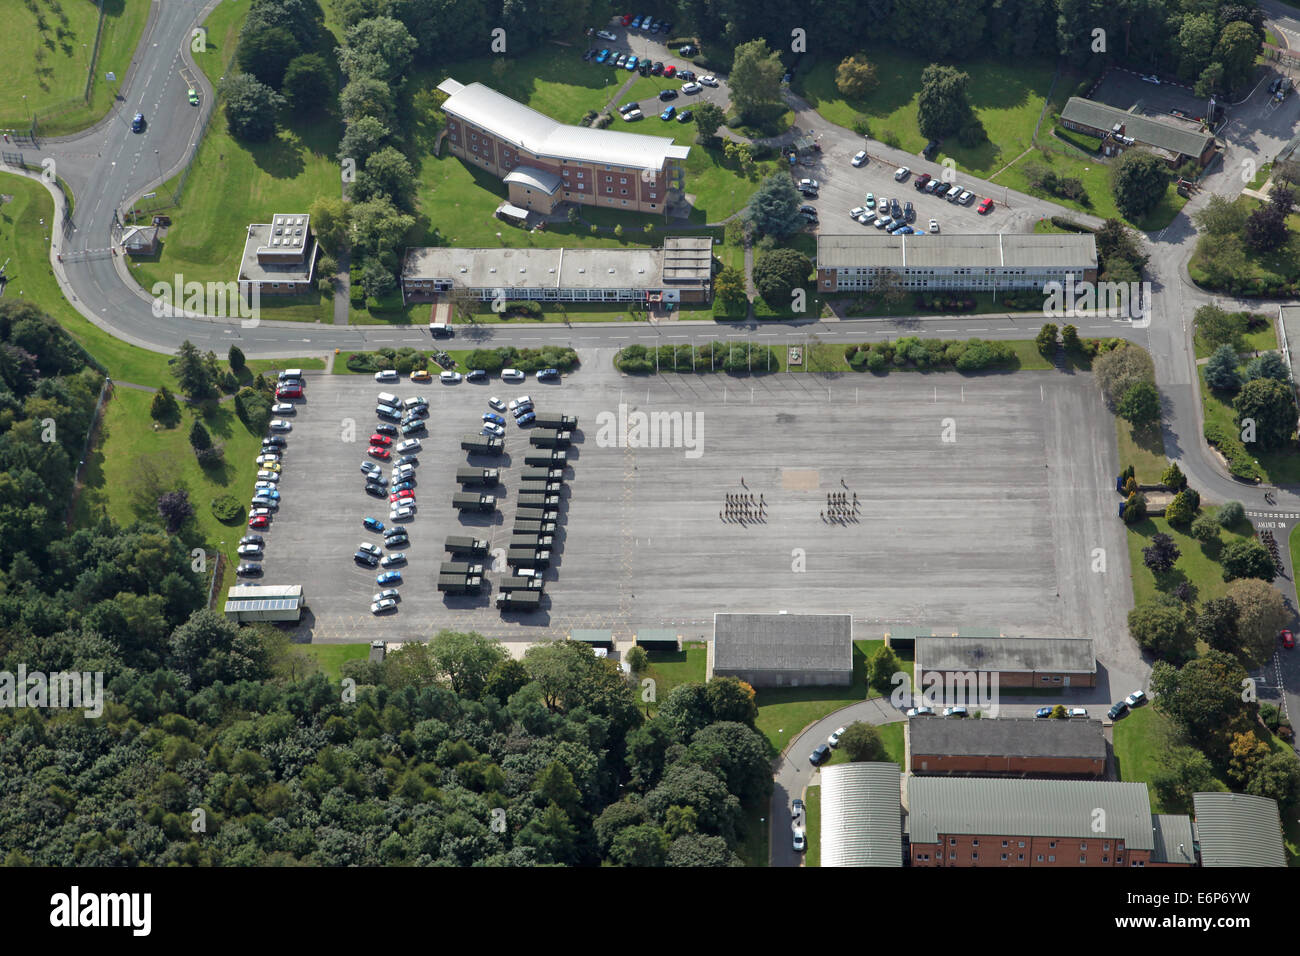 aerial view of a military parade ground at Catterick Garrison, North Yorkshire, UK - Stock Image